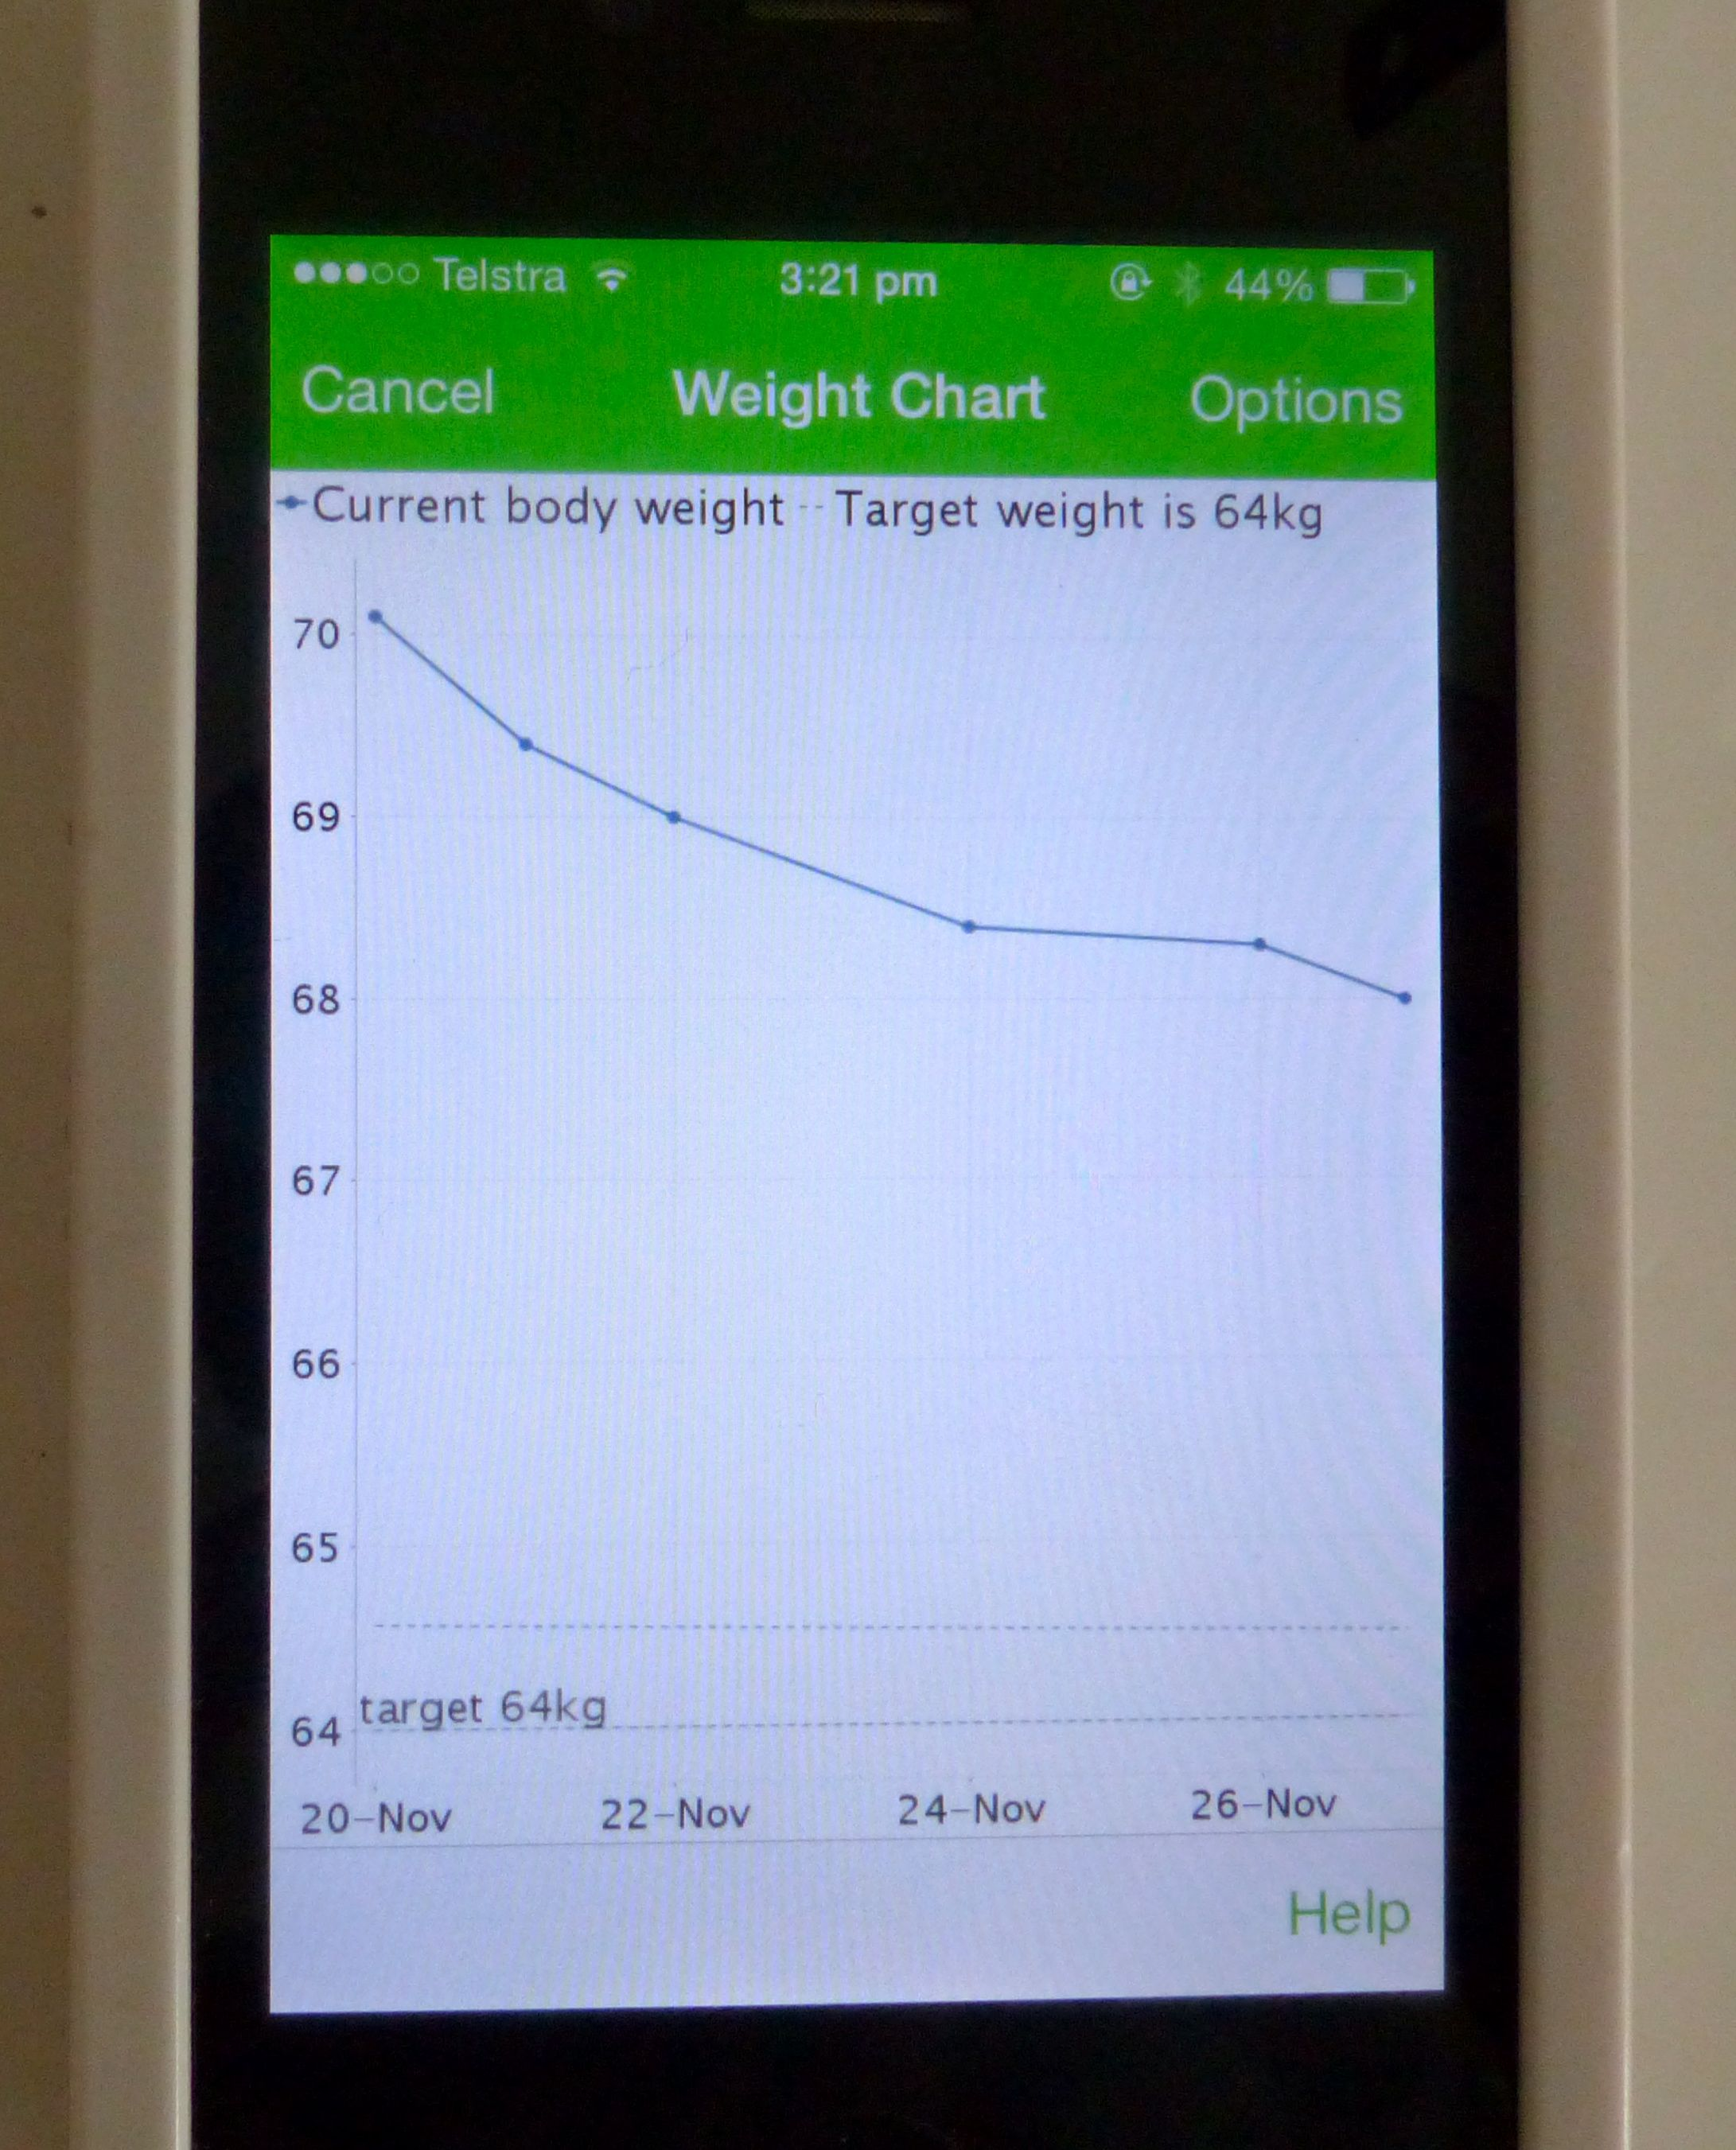 Best weight loss graph app 50 garcinia brands tested happy scale weight loss tracker geenschuldenfo Image collections